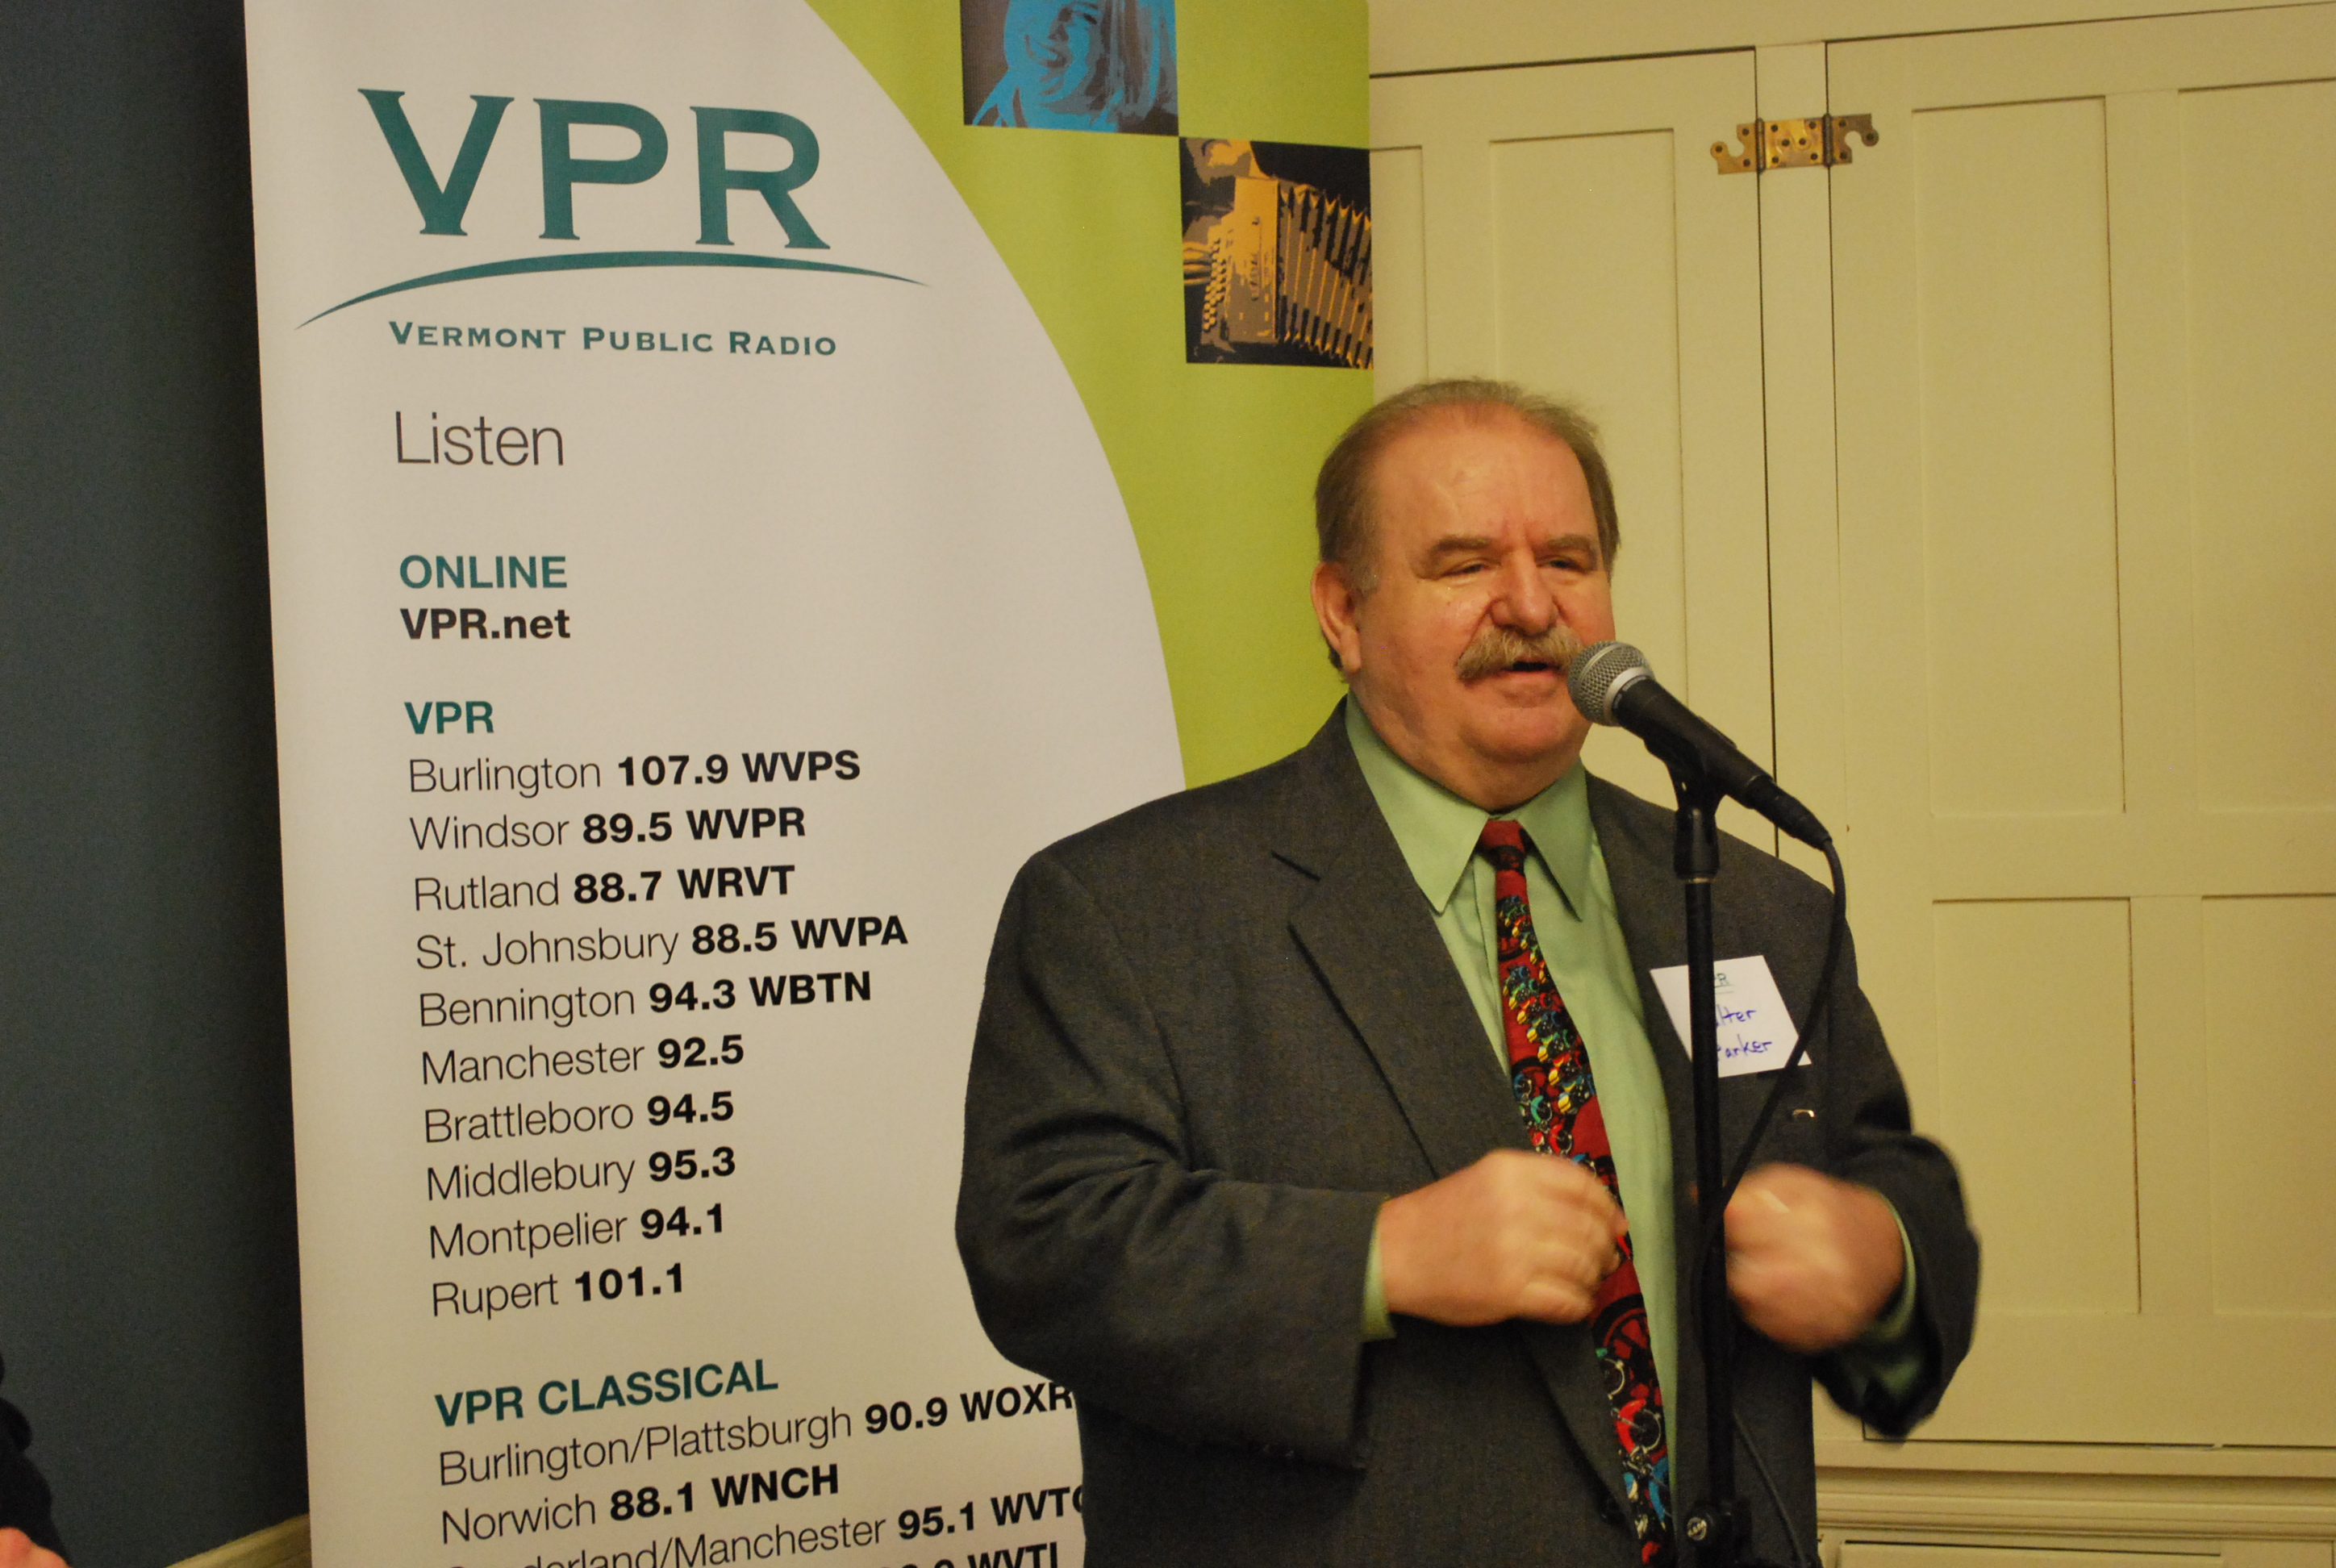 VPR Classical Host Walter Parker addresses the crowd.